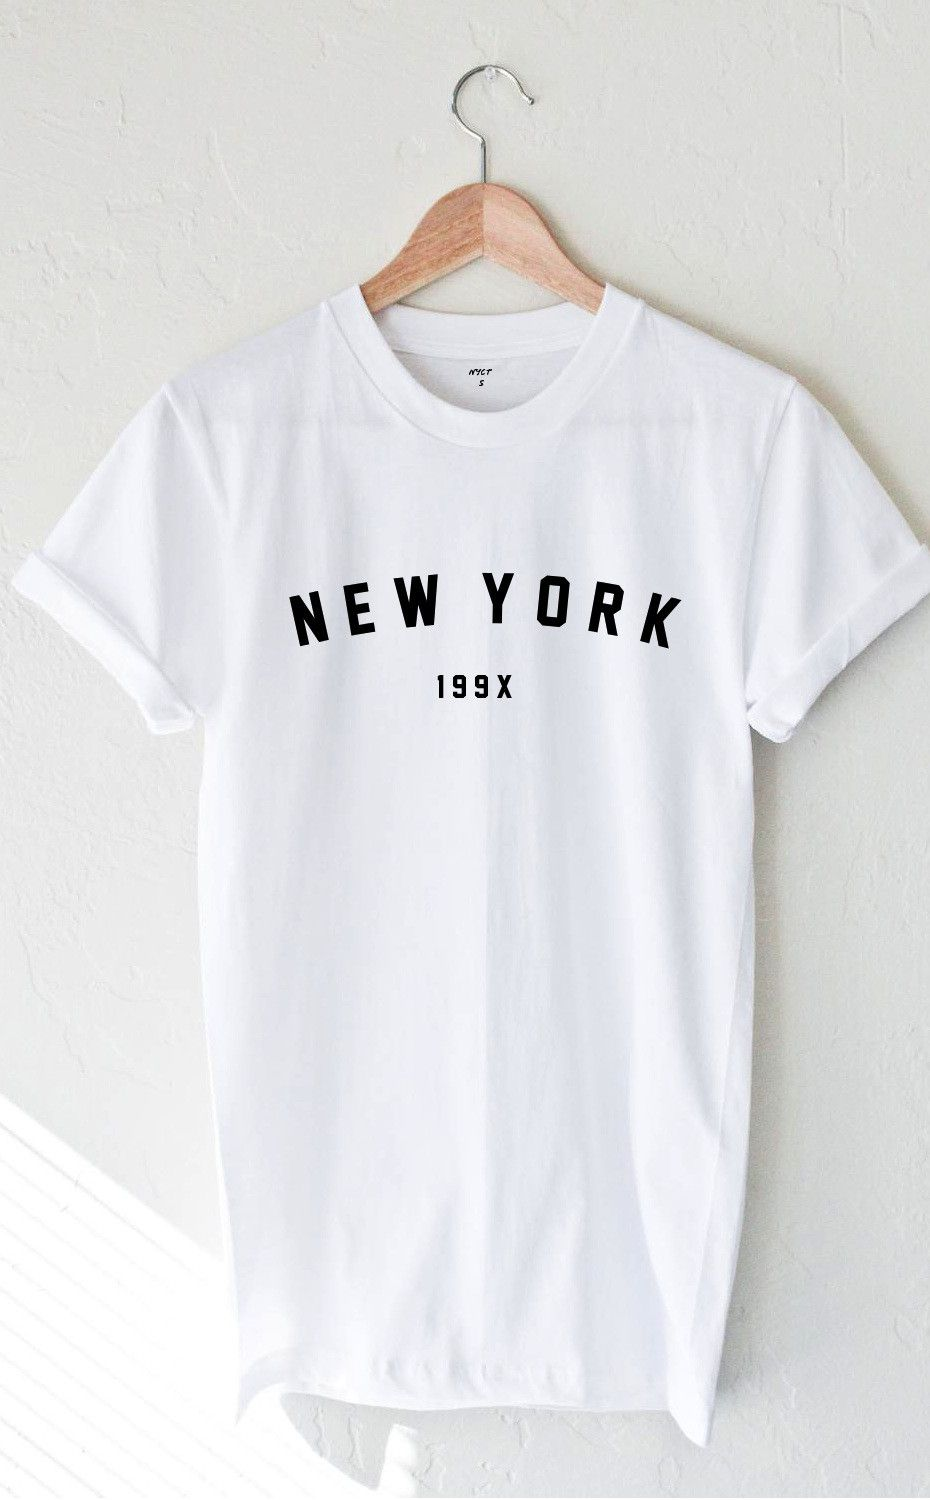 New York 199x T-shirt - White from NYCT | Graphic Tees in ...